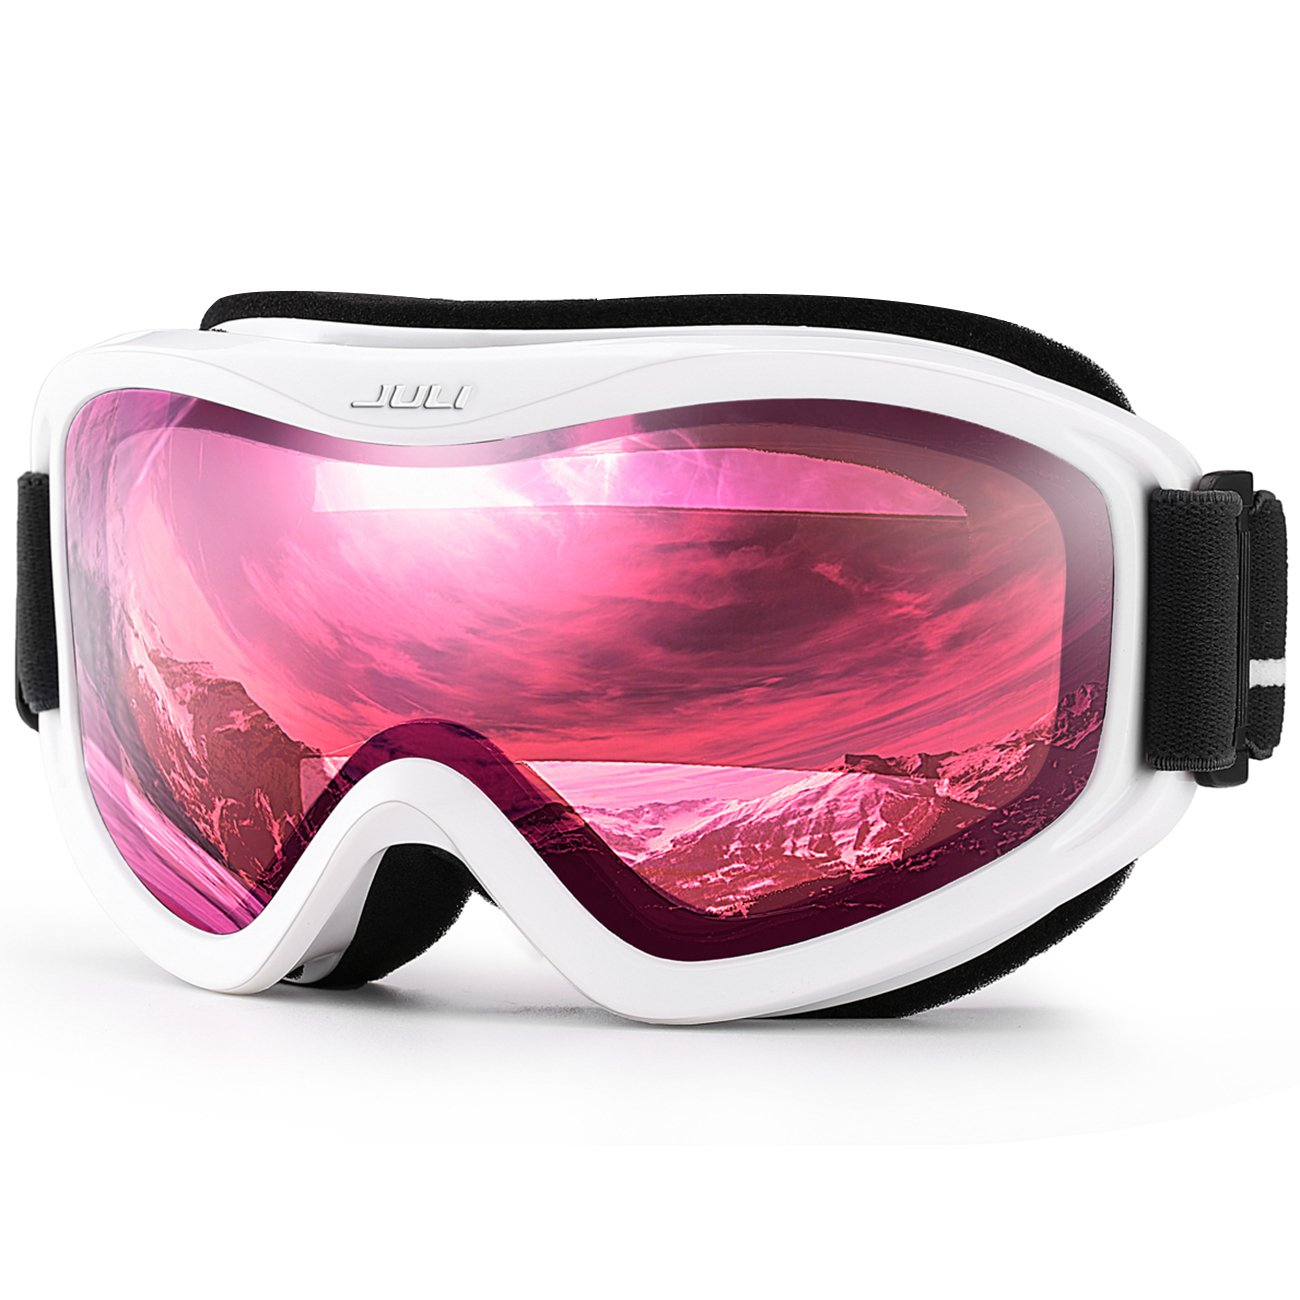 Juli Snowboard Goggles with Anti-Fog UV Protection